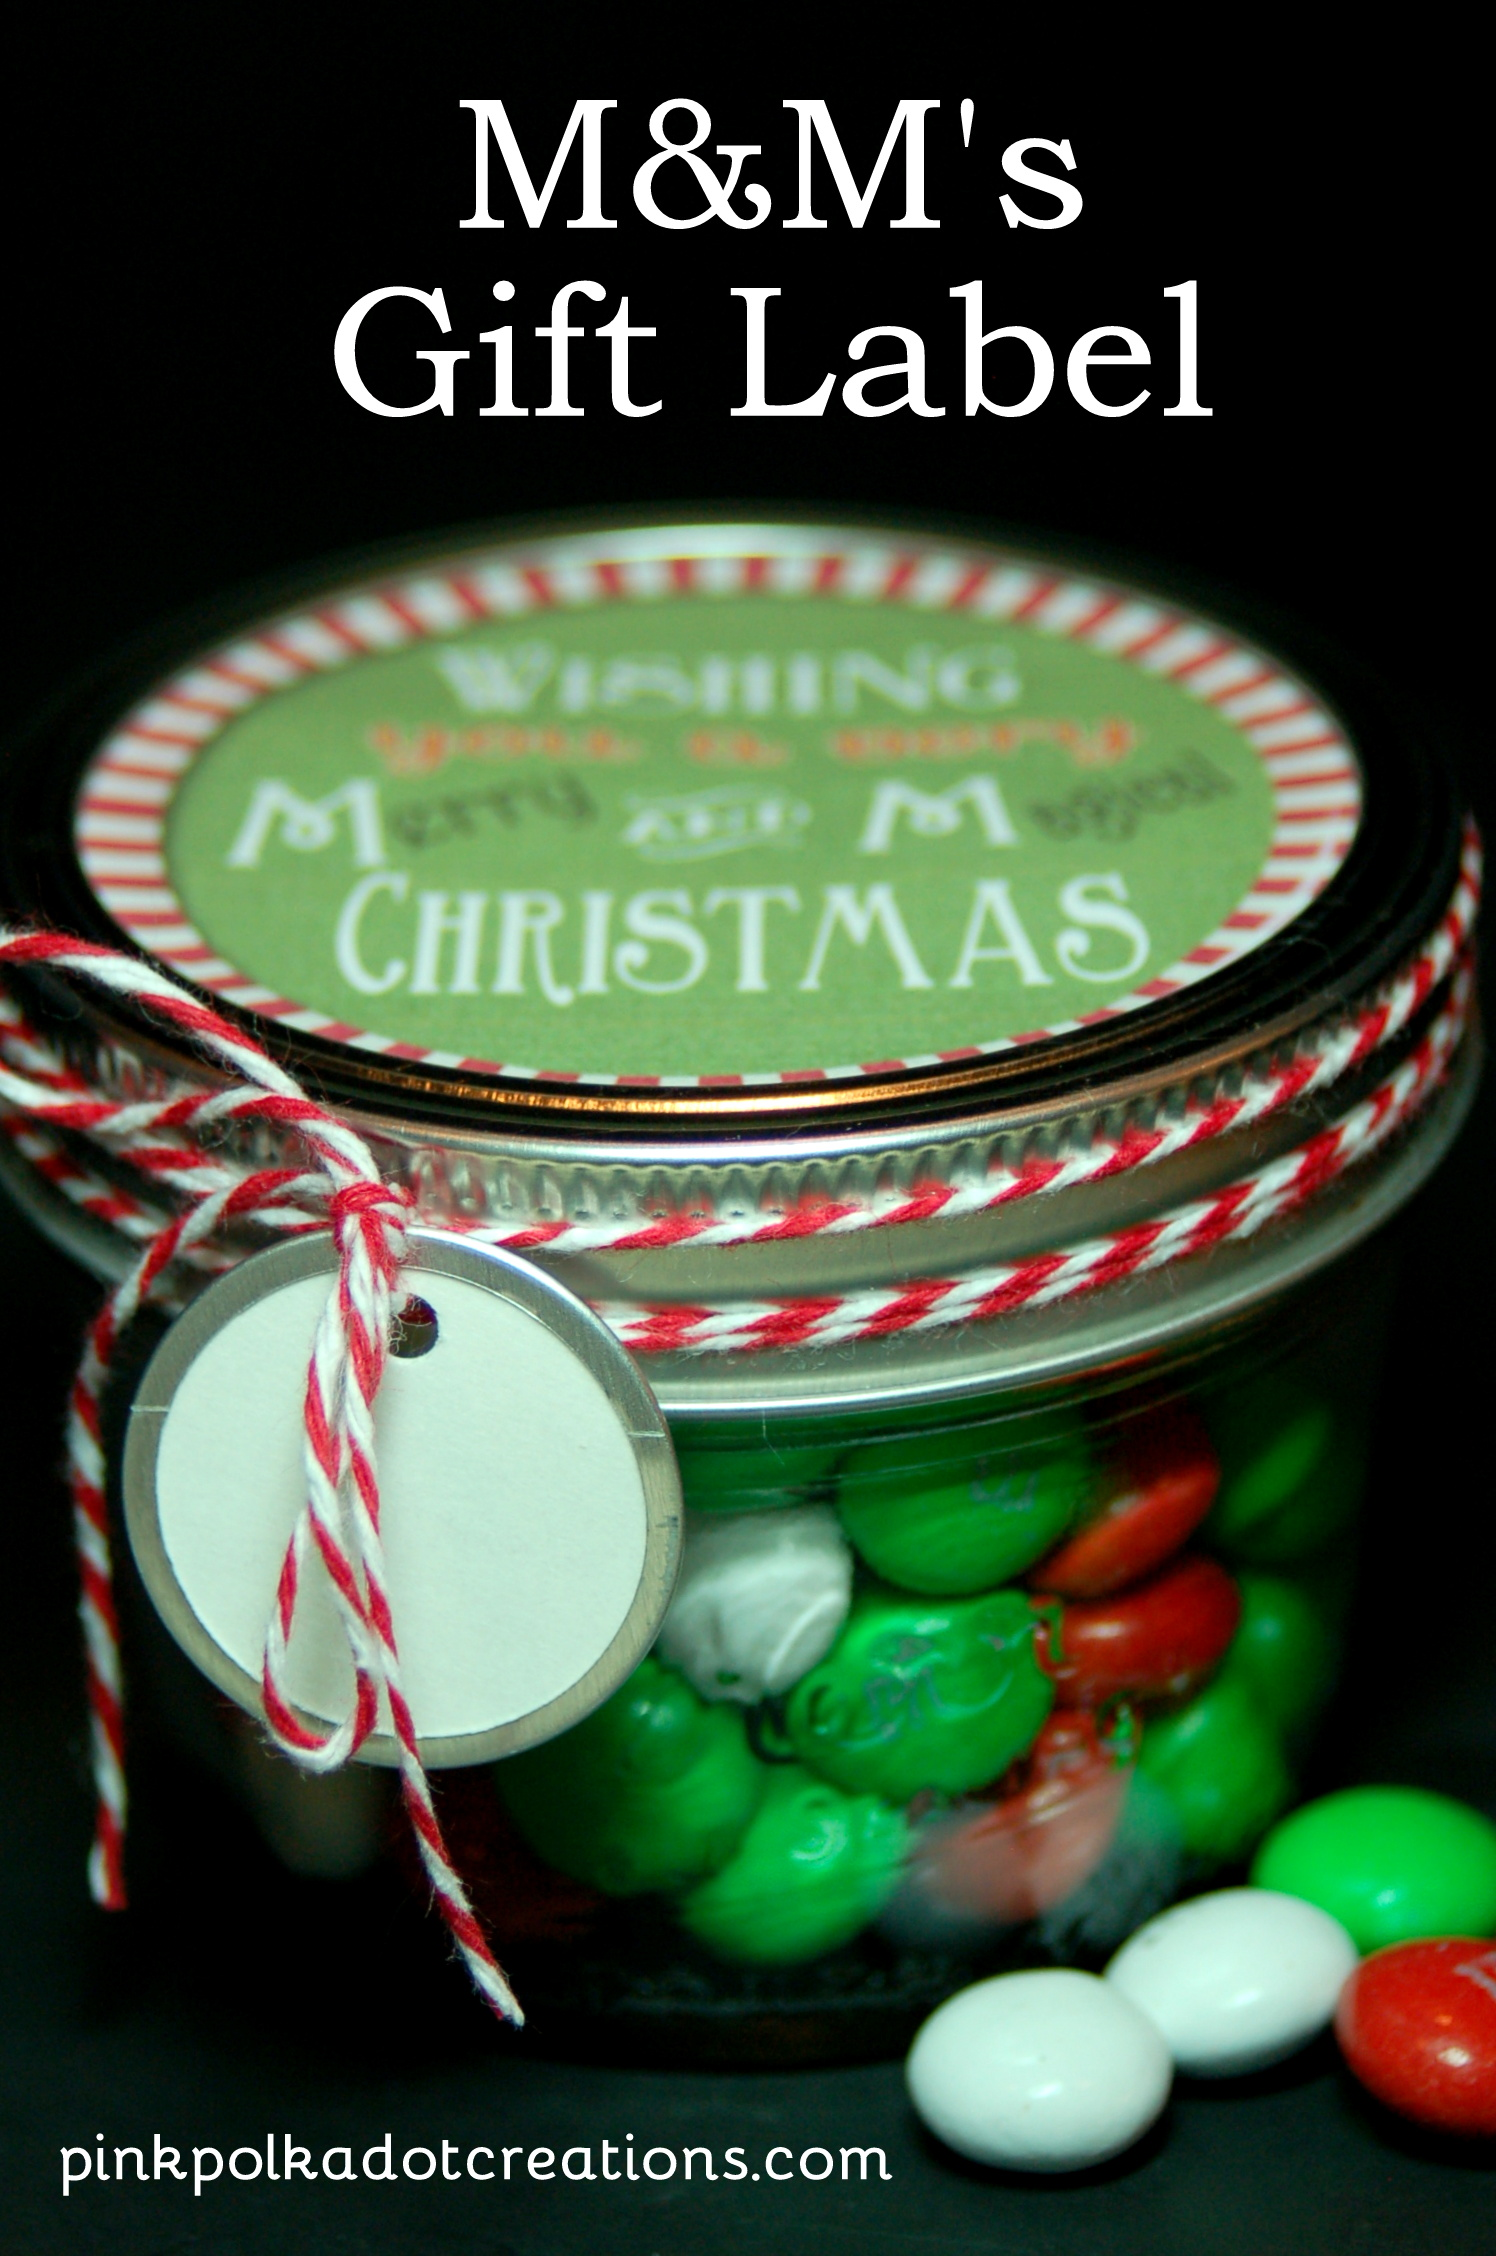 Jimmy kimmel bad xmas gifts for girls